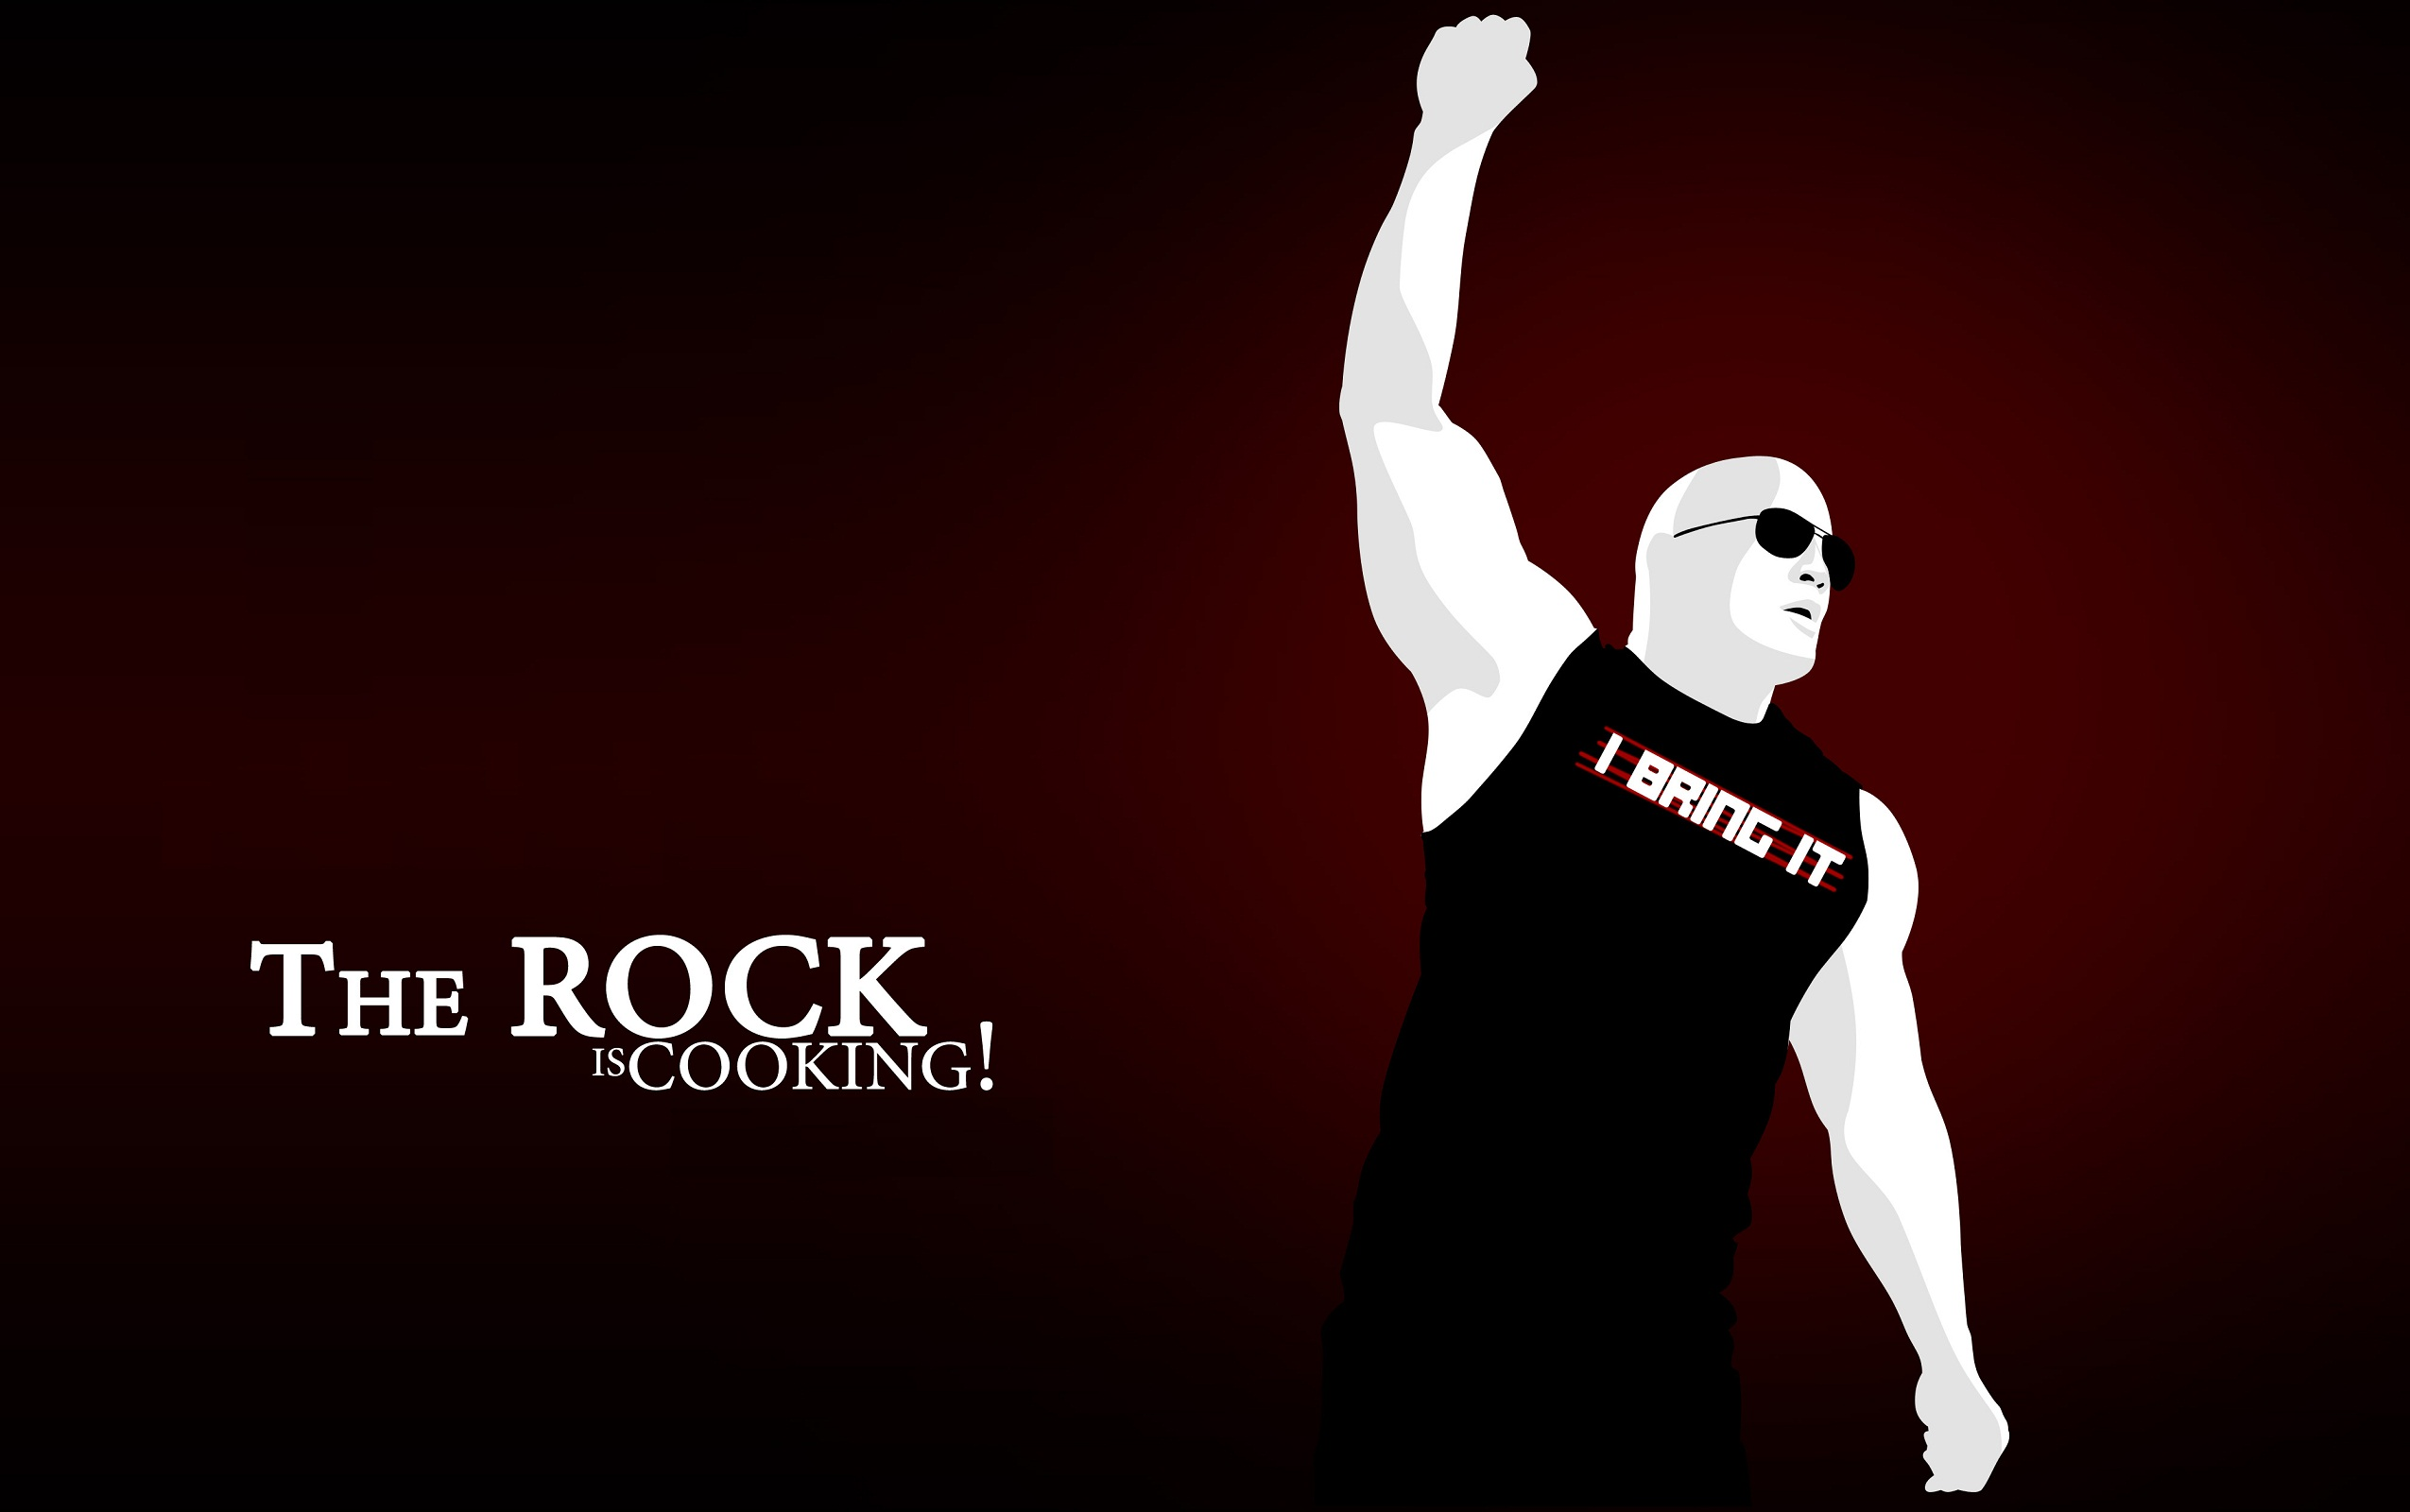 The Rock Is Cooking Click To View